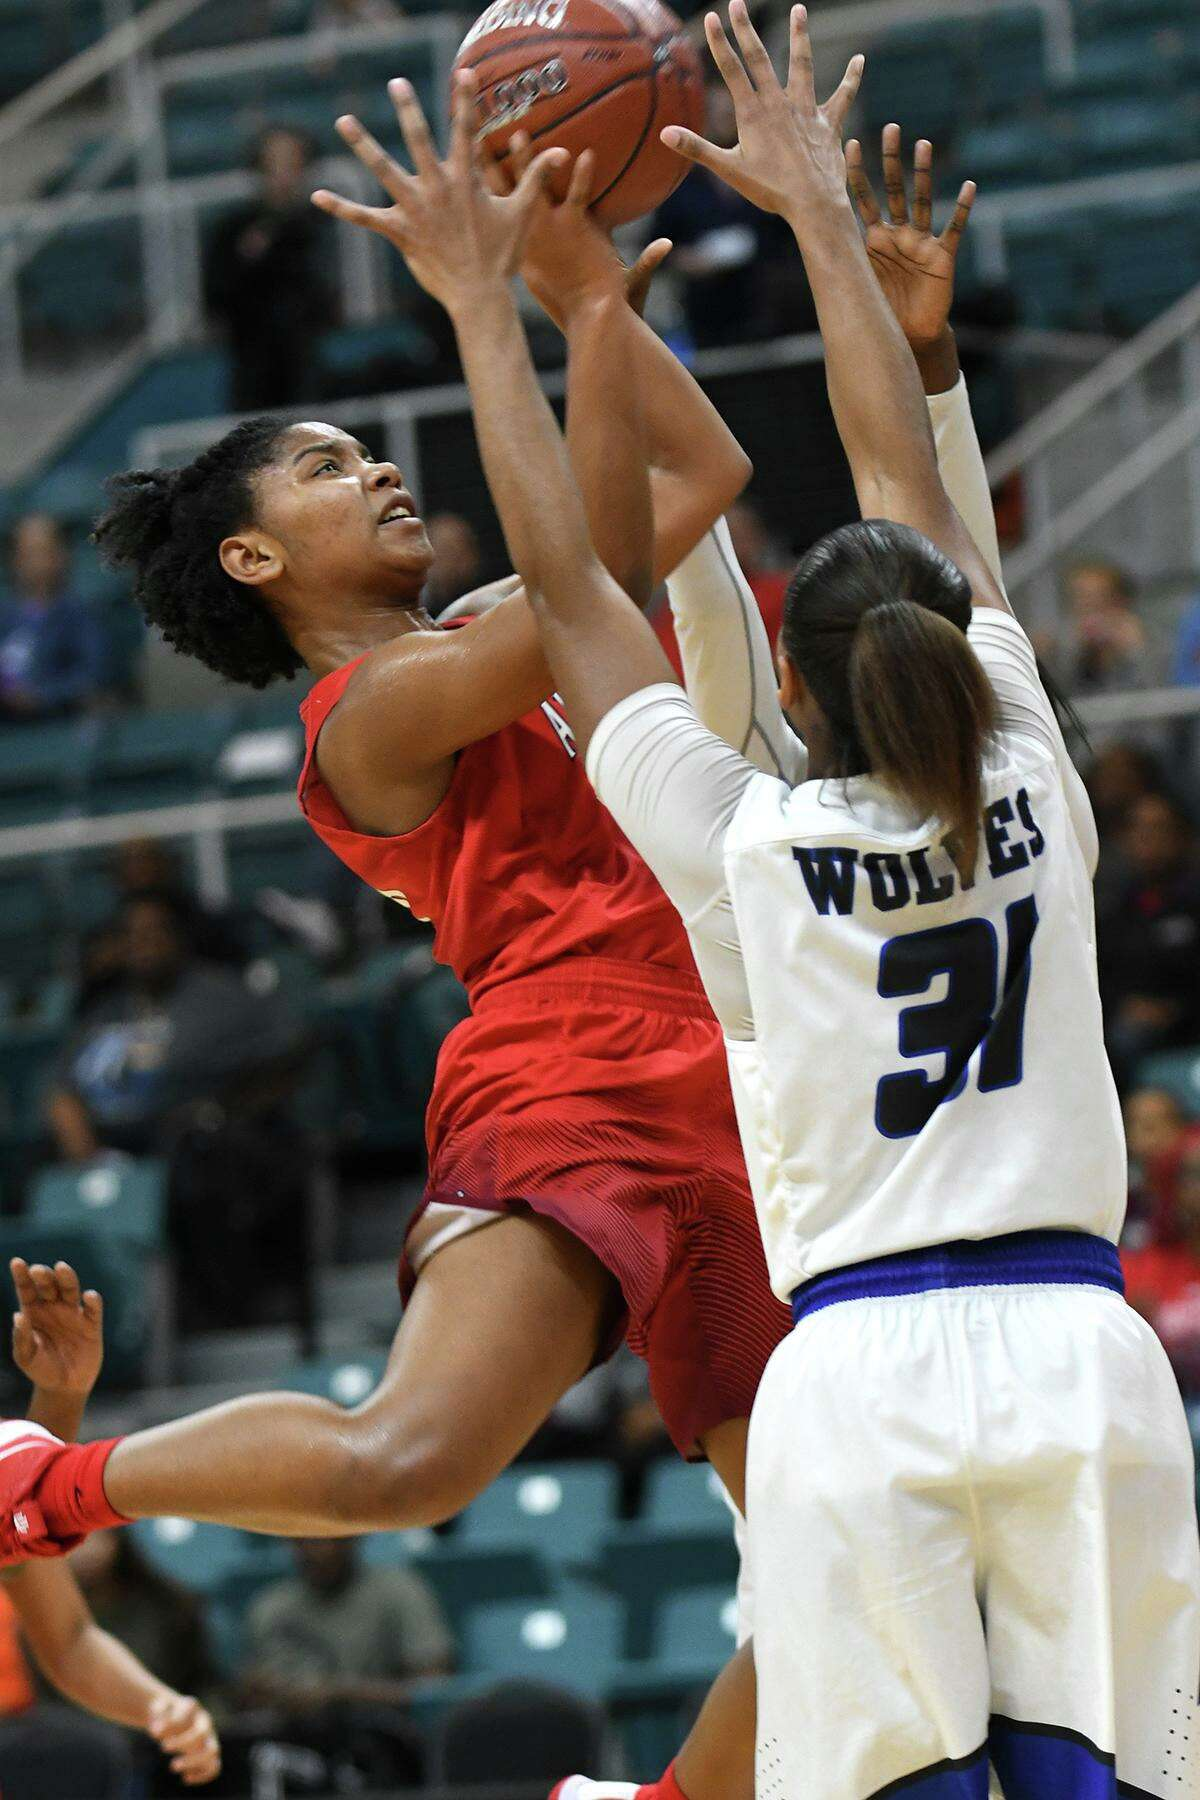 Atascocita sophomore guard Robin Whitehead (10) skies for a shot over Westside senior forward Jessica Soders (31) during the 4th quarter of their UIL Region III-6A Girls Basketball Semi-final matchup at the Merrell Center in Katy on Feb. 22, 2019.